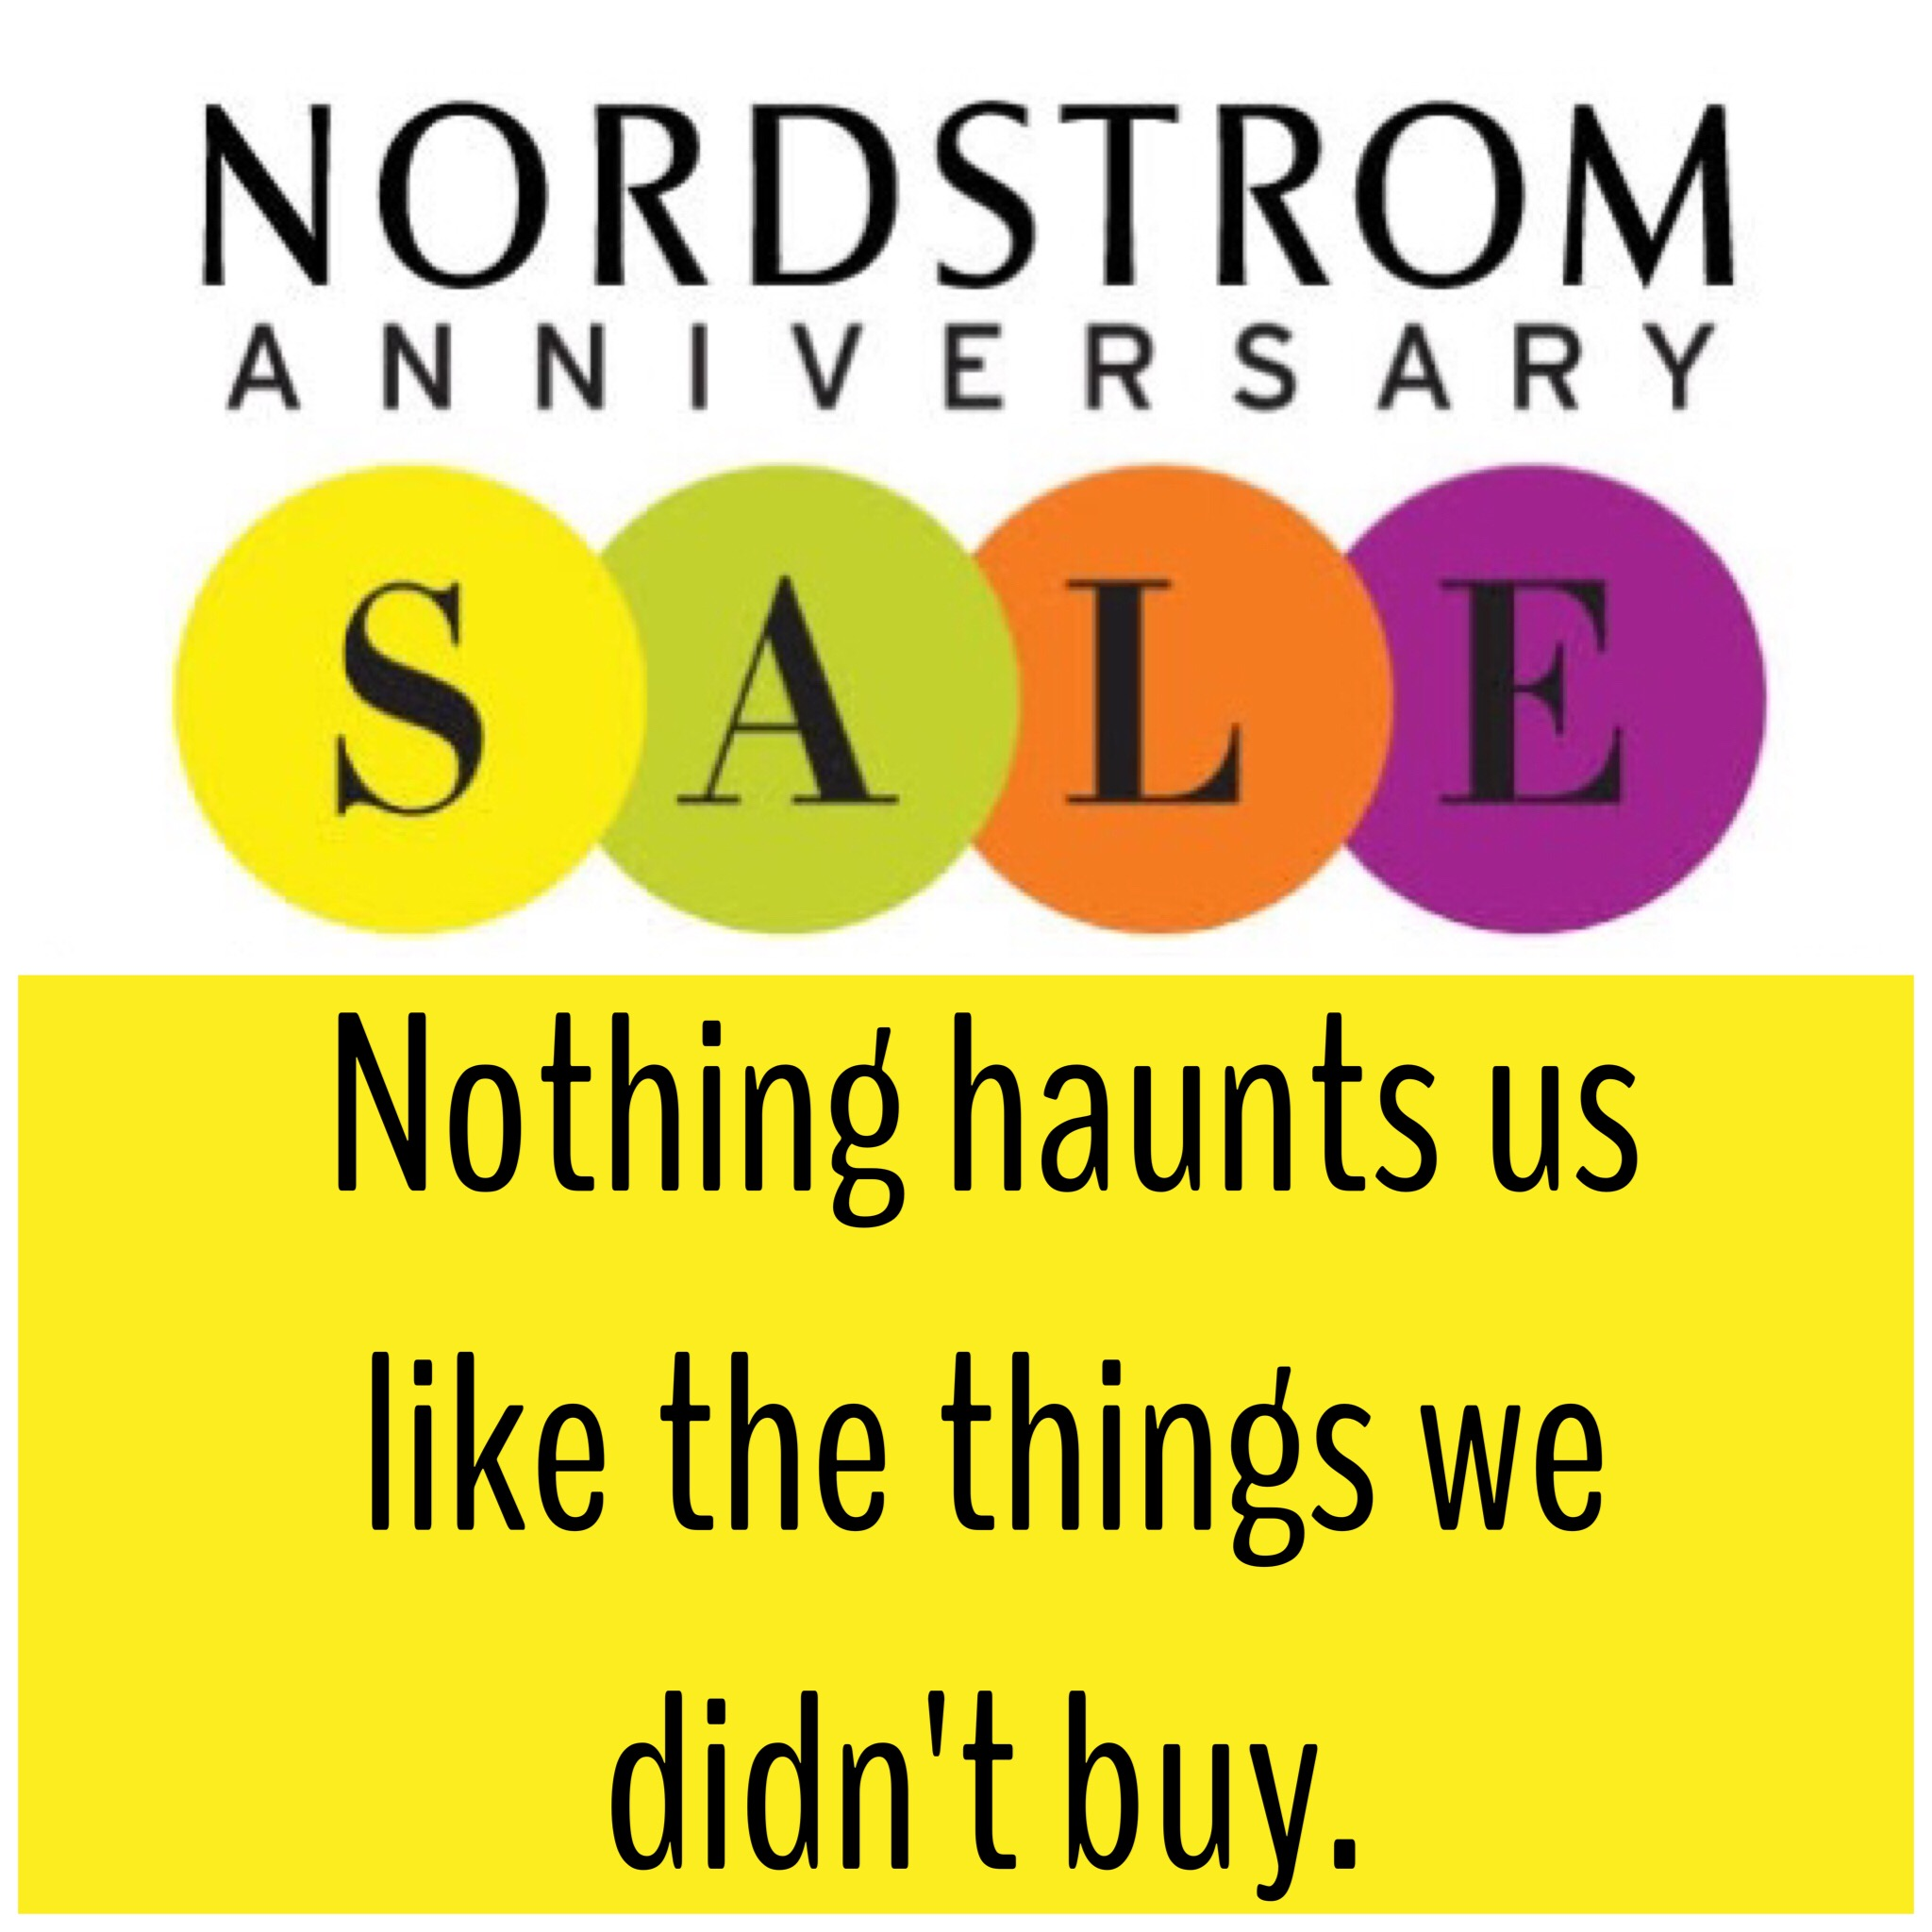 10 Nordstrom Anniversary Deals You Shouldn't Miss